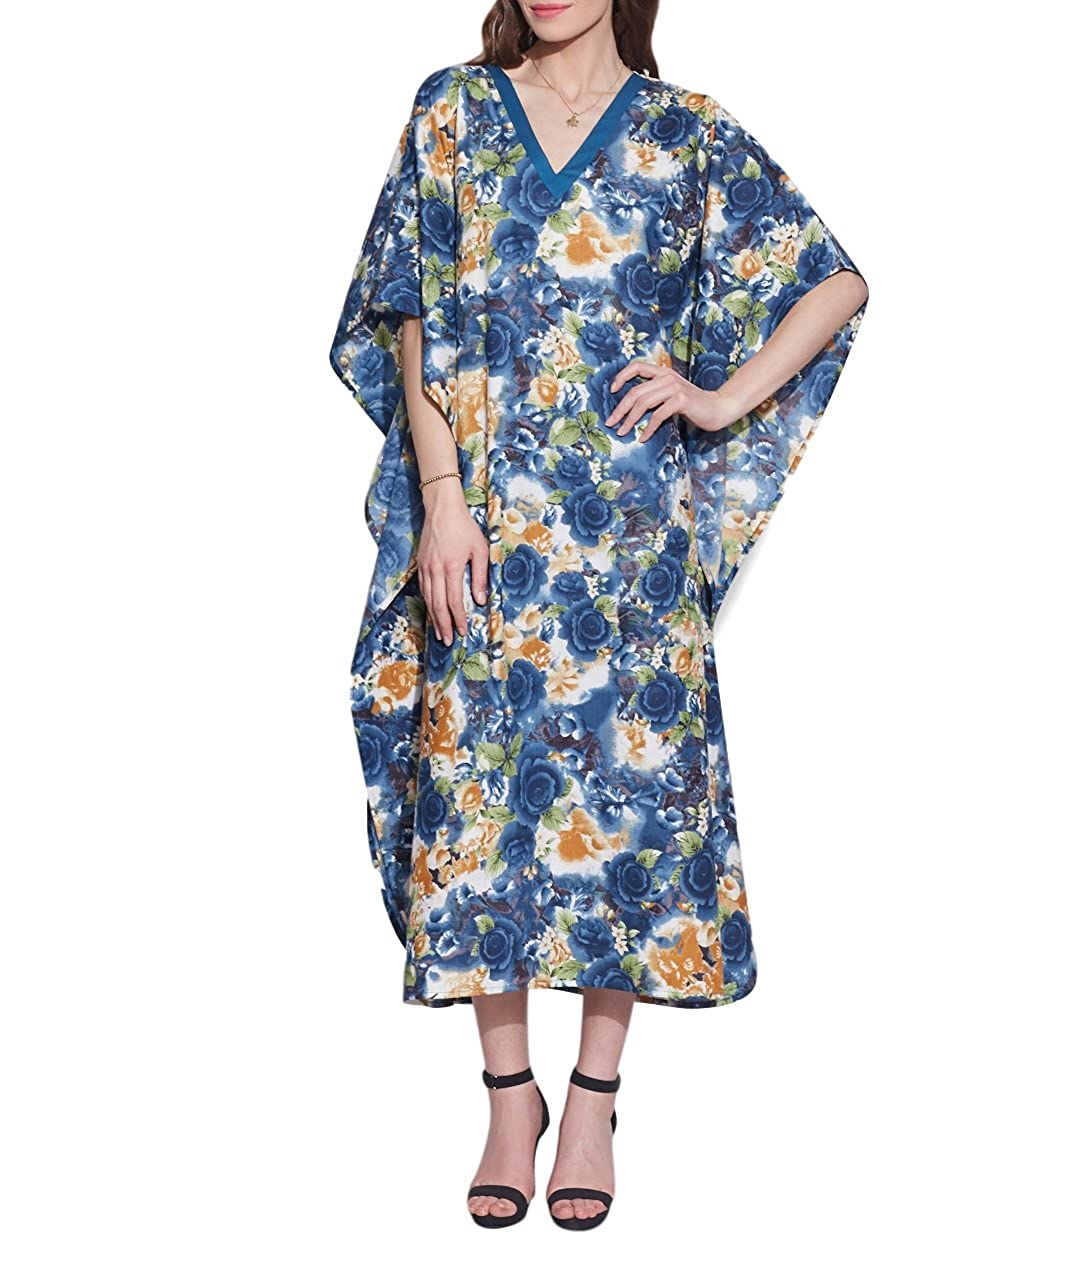 300f924f36 ShalinIndia Indian Dress Free Size Tunic Casual Evening Wear Comfortable  Airy Cotton Printed Kaftan for Women  Amazon.in  Clothing   Accessories